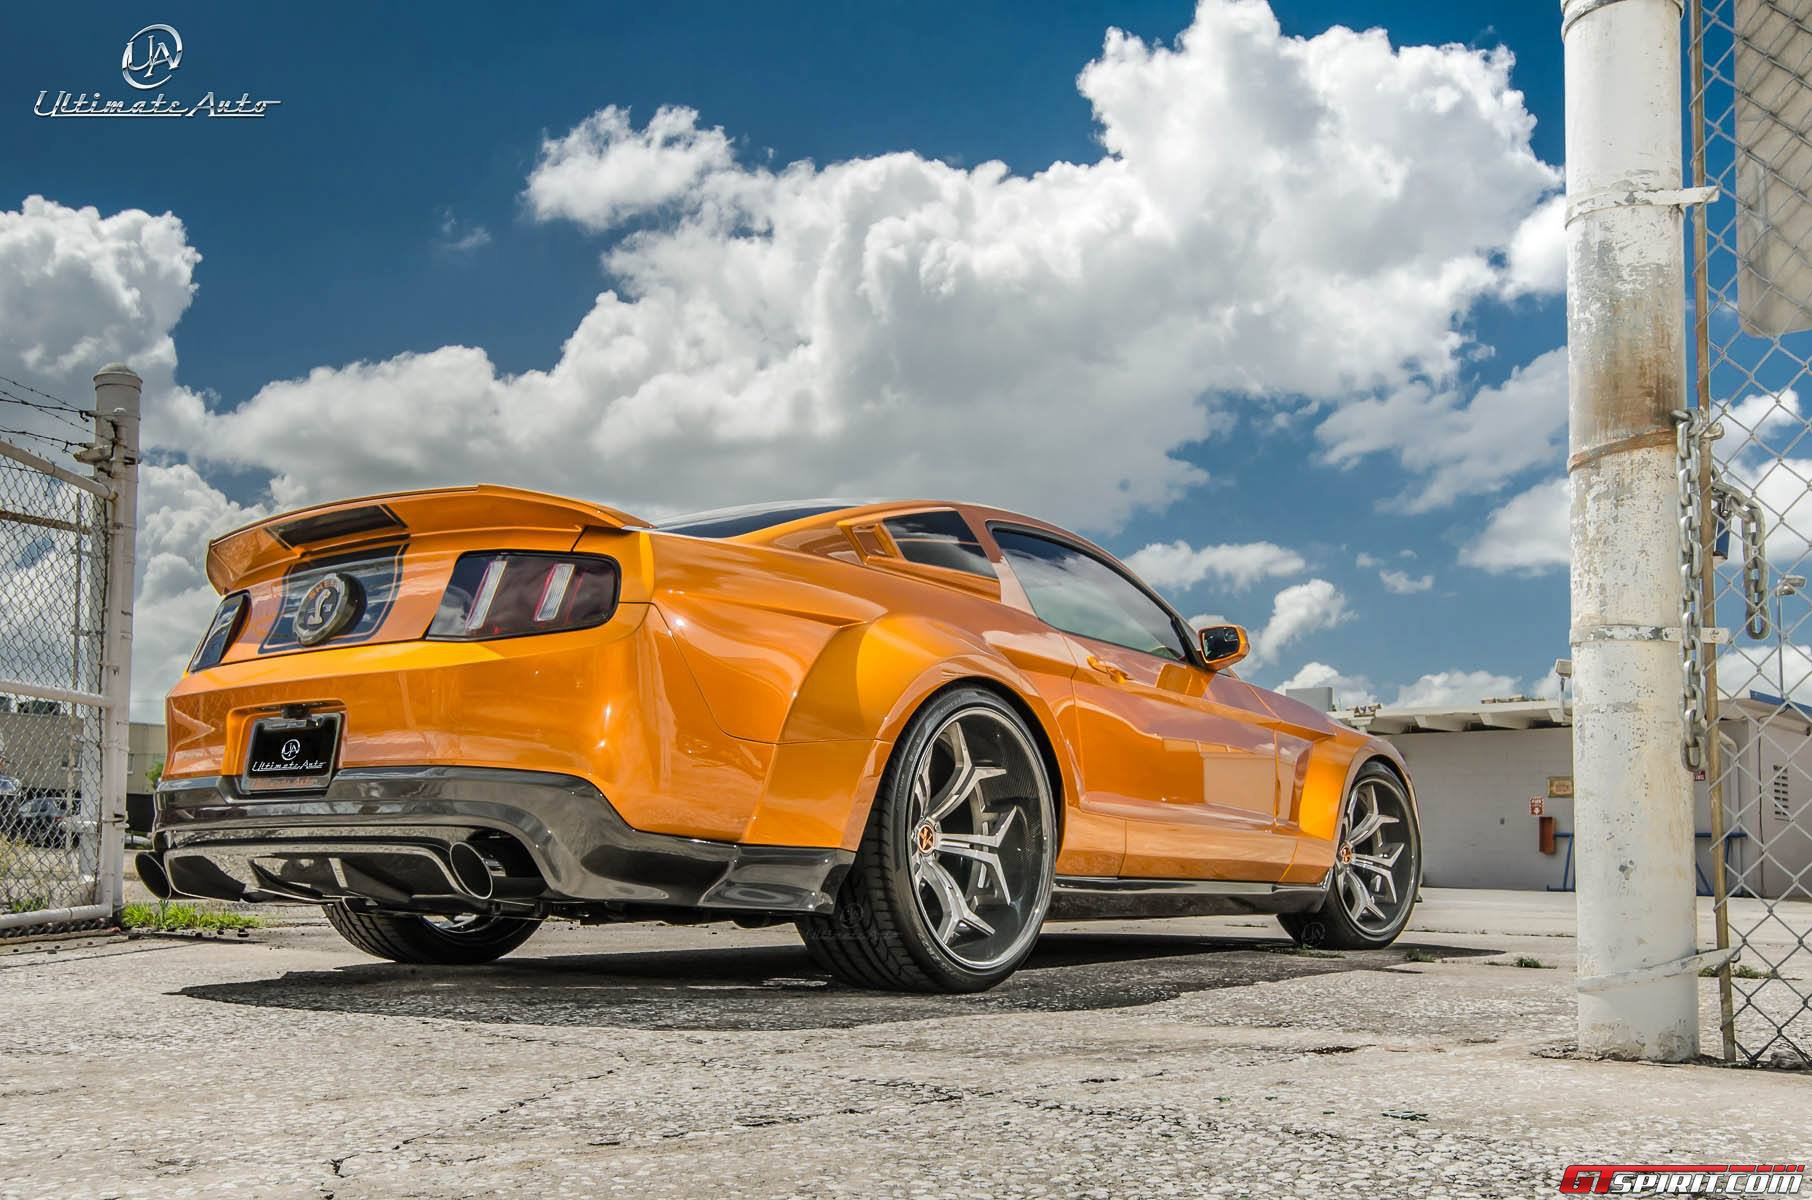 Ford Mustang Shelby GT500 Ultimate Auto тюнинг. Карбон